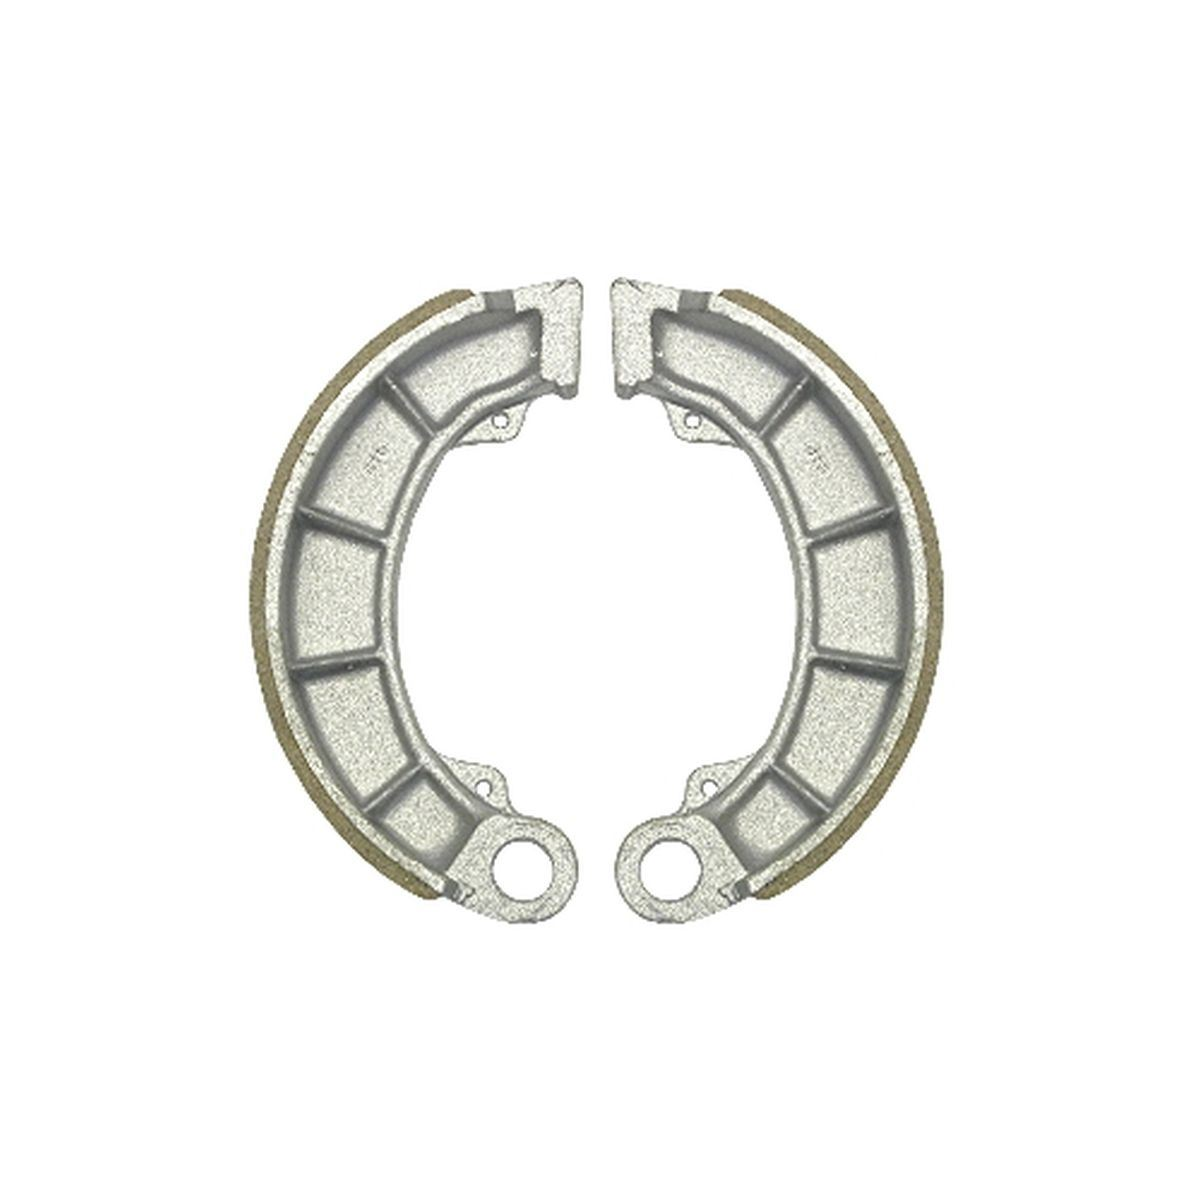 VB130 Brake Shoes for Lexmoto Arizona 125 ZS125-30